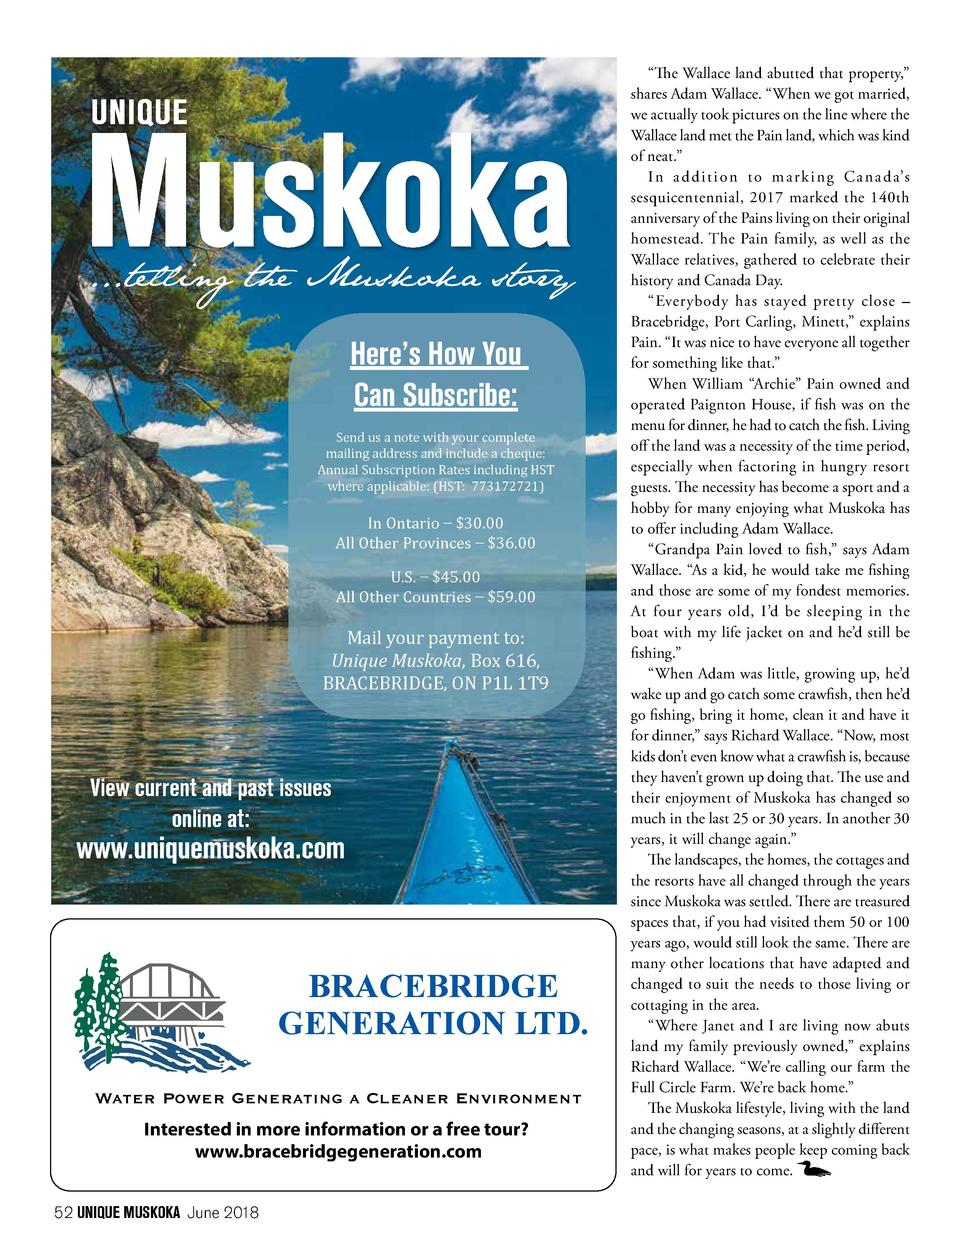 ...telling the Muskoka story  Here   s How You Can Subscribe  Send us a note with your complete mailing address and includ...